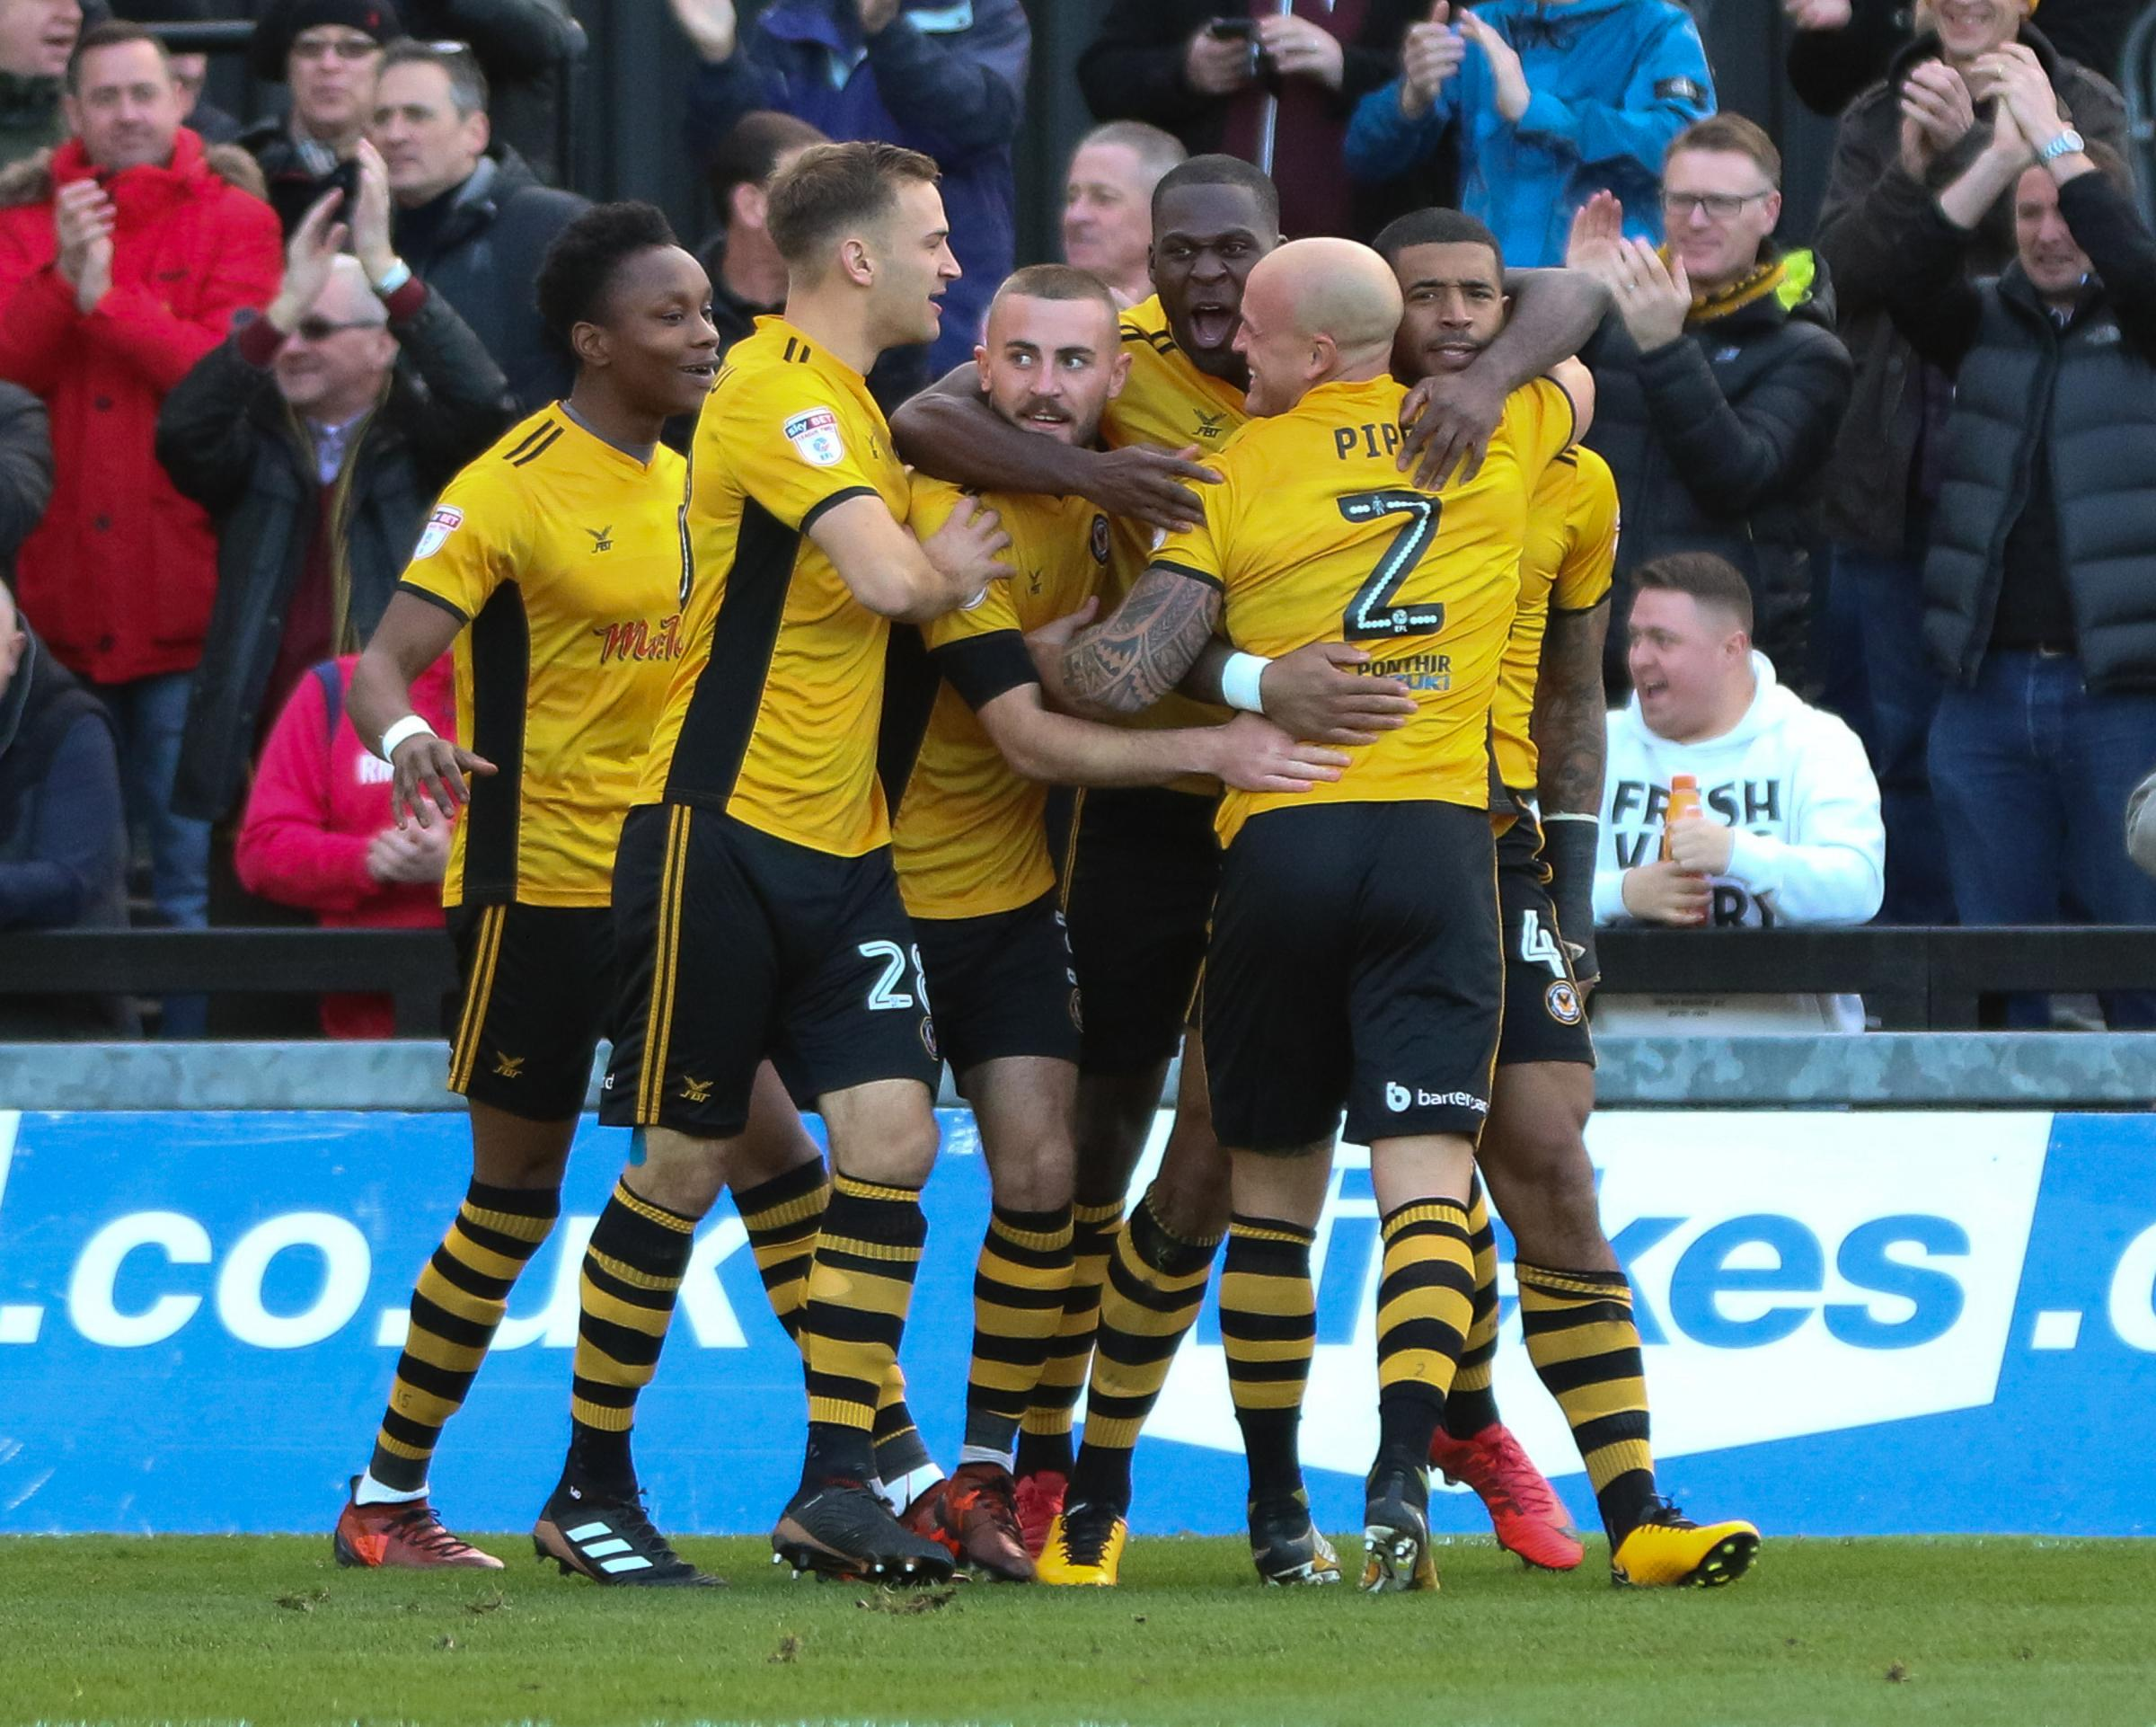 JOY: Newport County celebrate Joss Labadie's first goal against Cambridge United on Sunday. Pictures: Huw Evans Agency